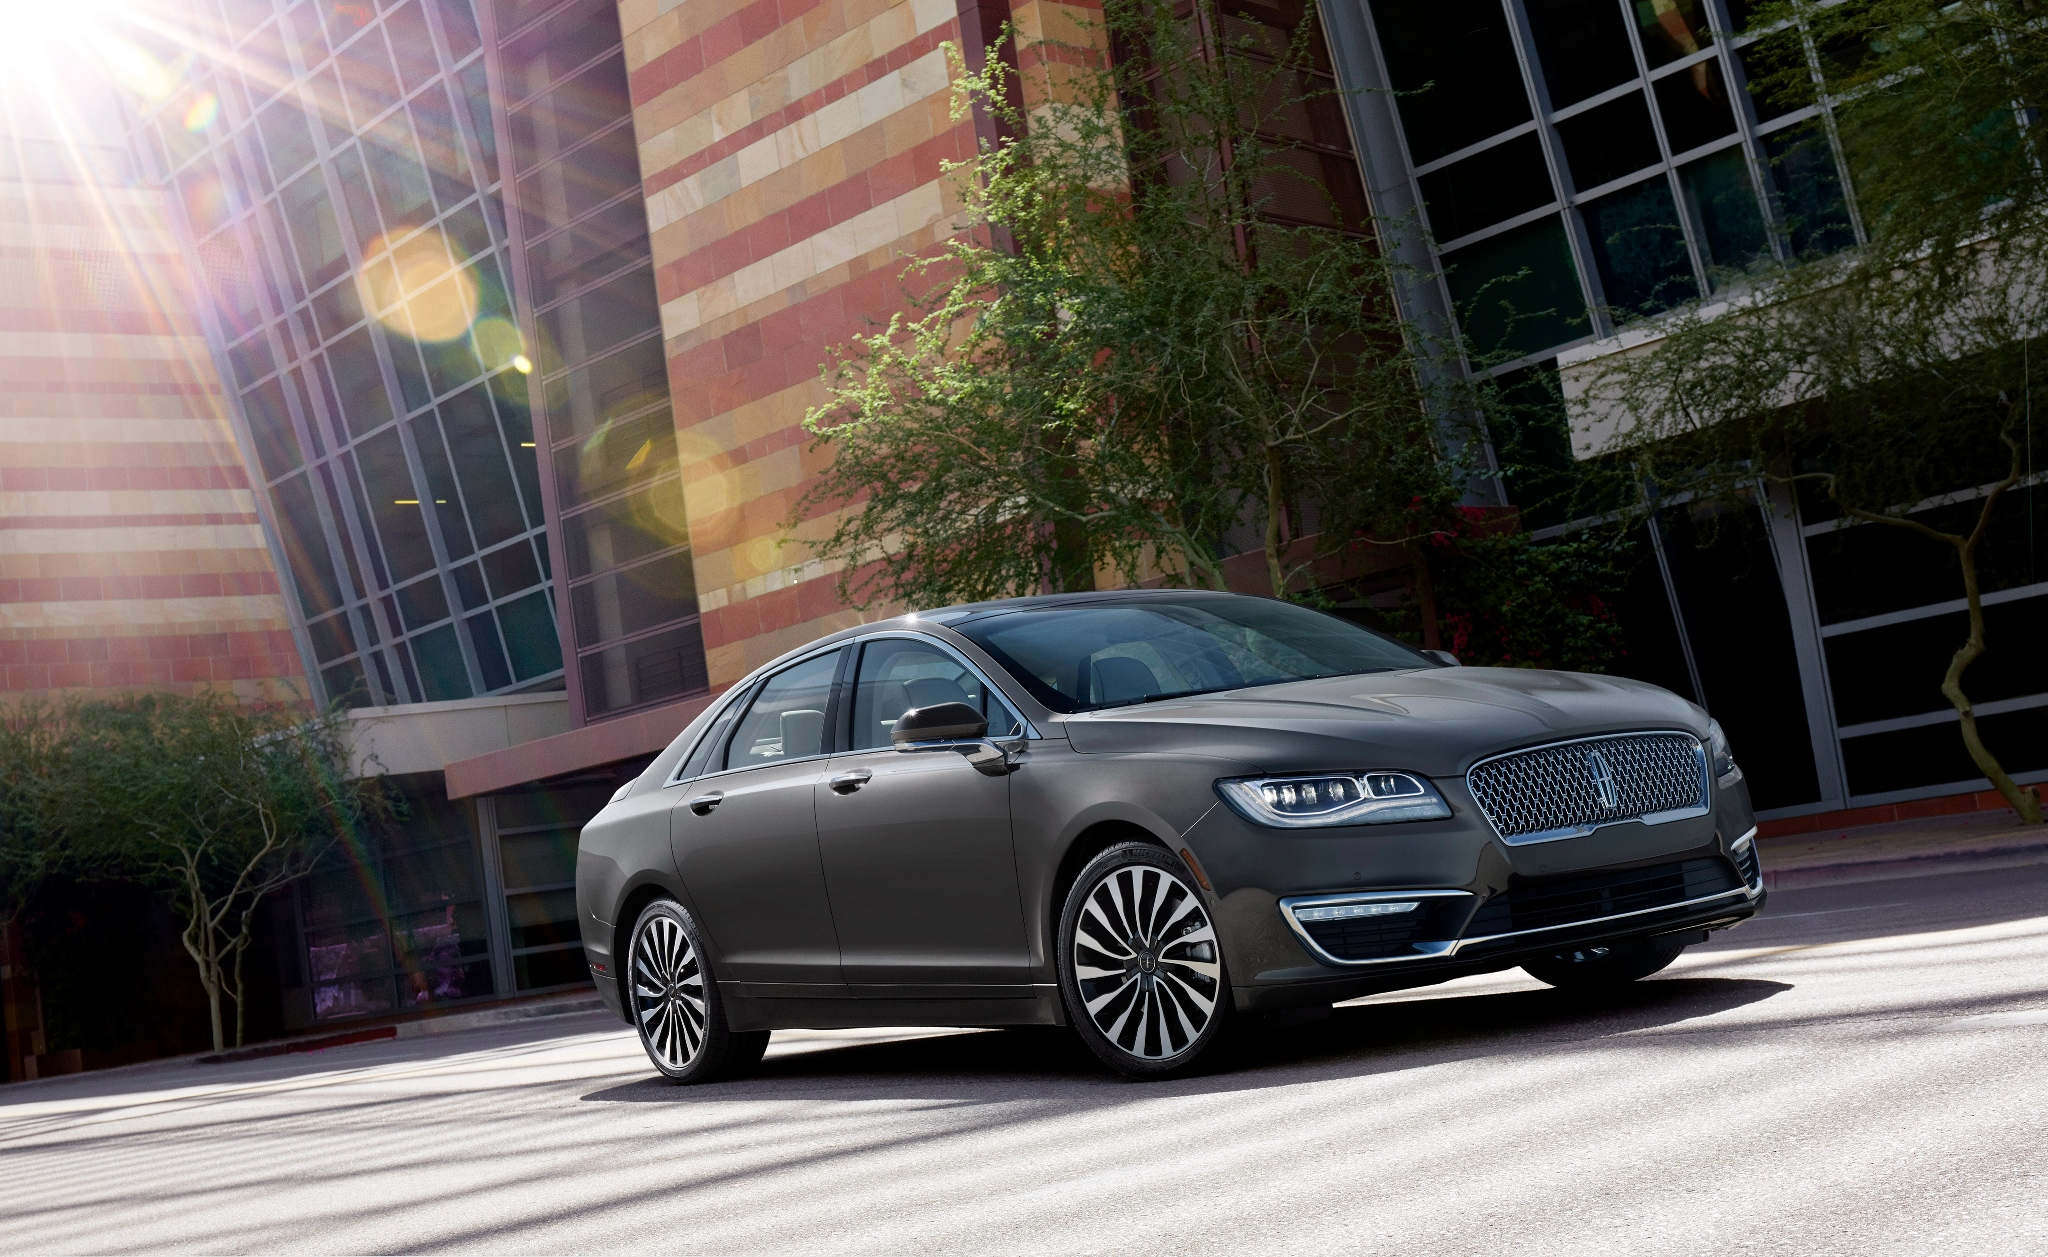 Lincoln MKZ Wallpapers Pack Download V.79 - B.SCB Wallpapers